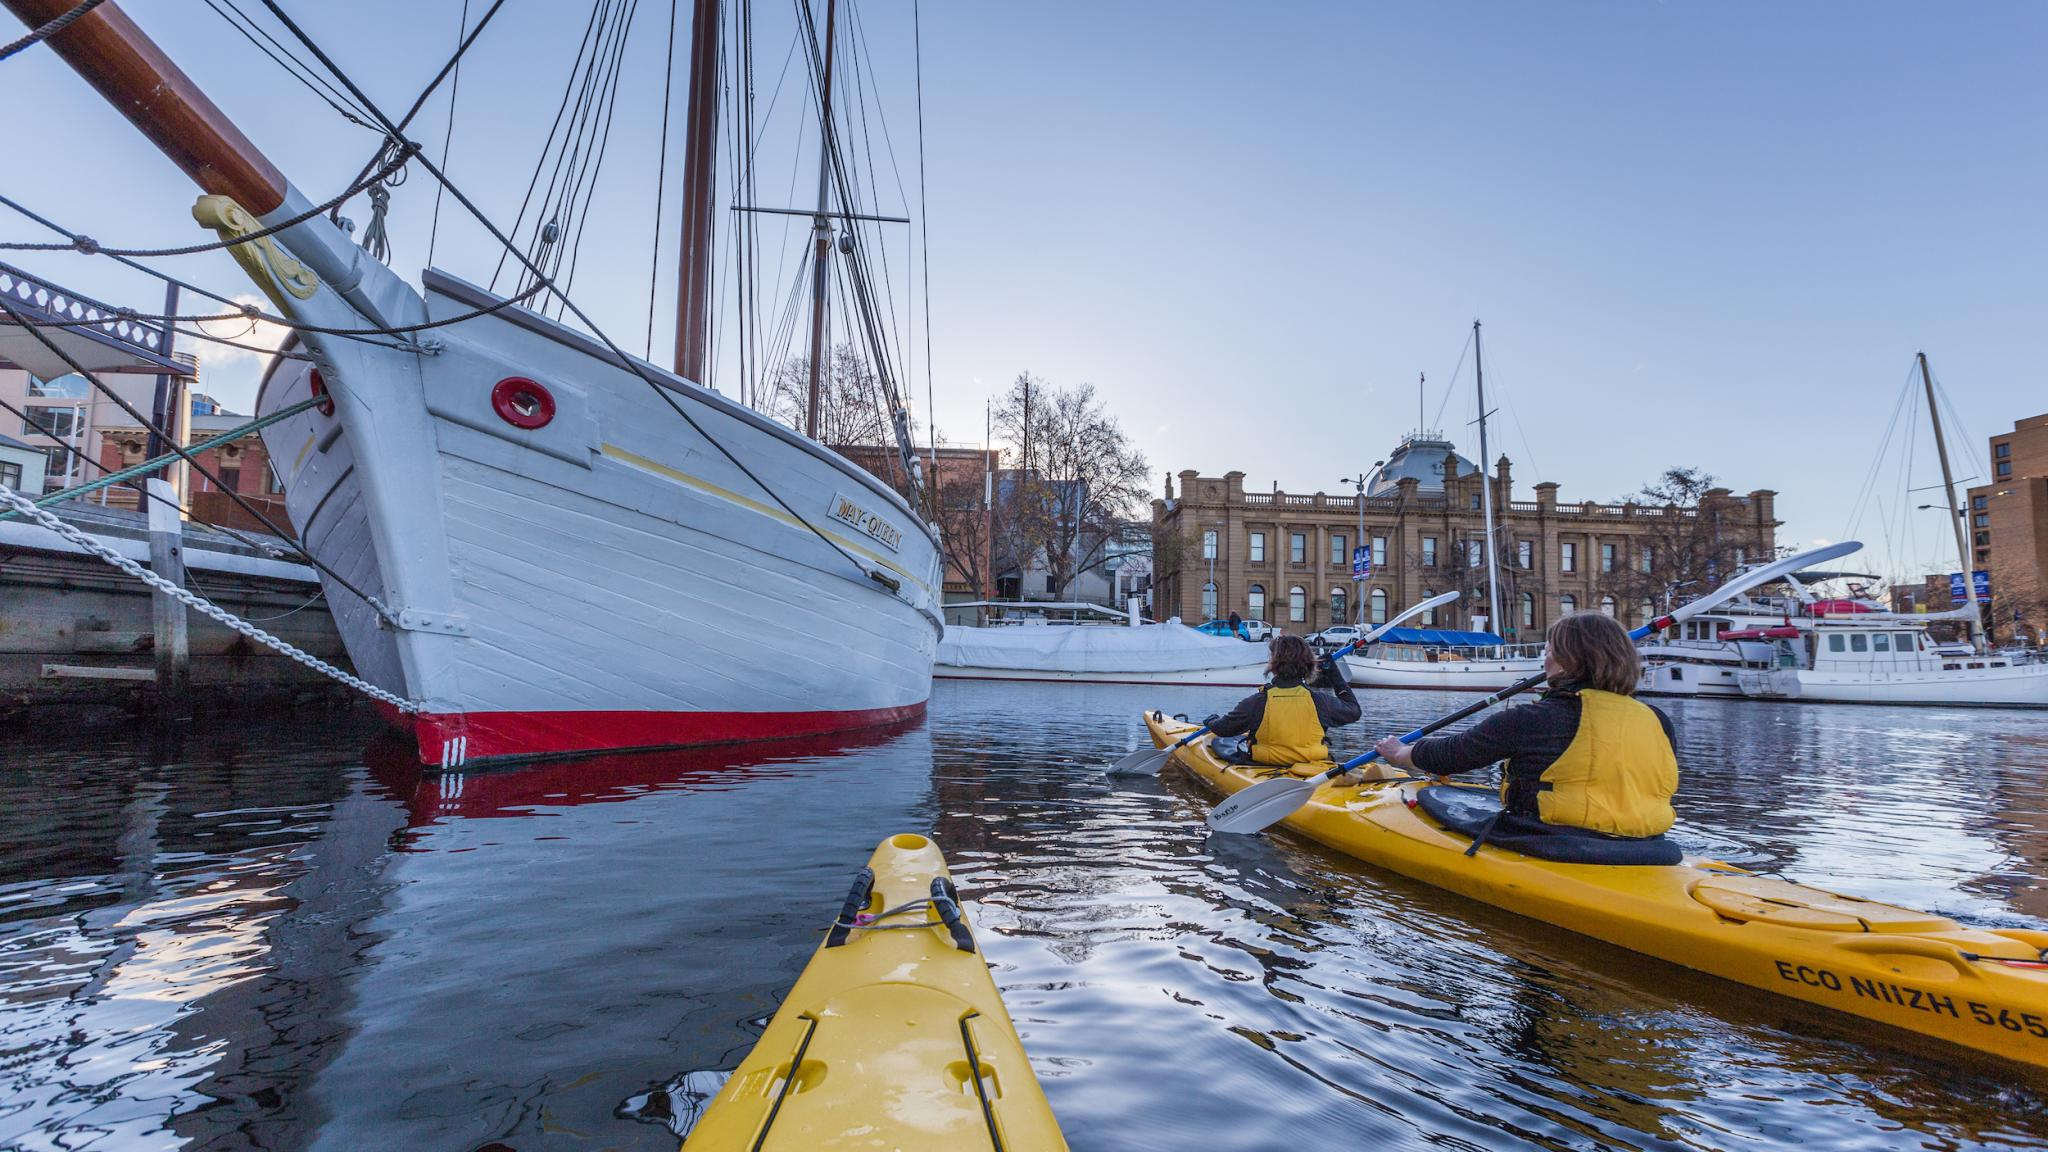 Roaring 40s Kayaking - Kayaking Hobart Waterfront - One of the best things to do in Hobart